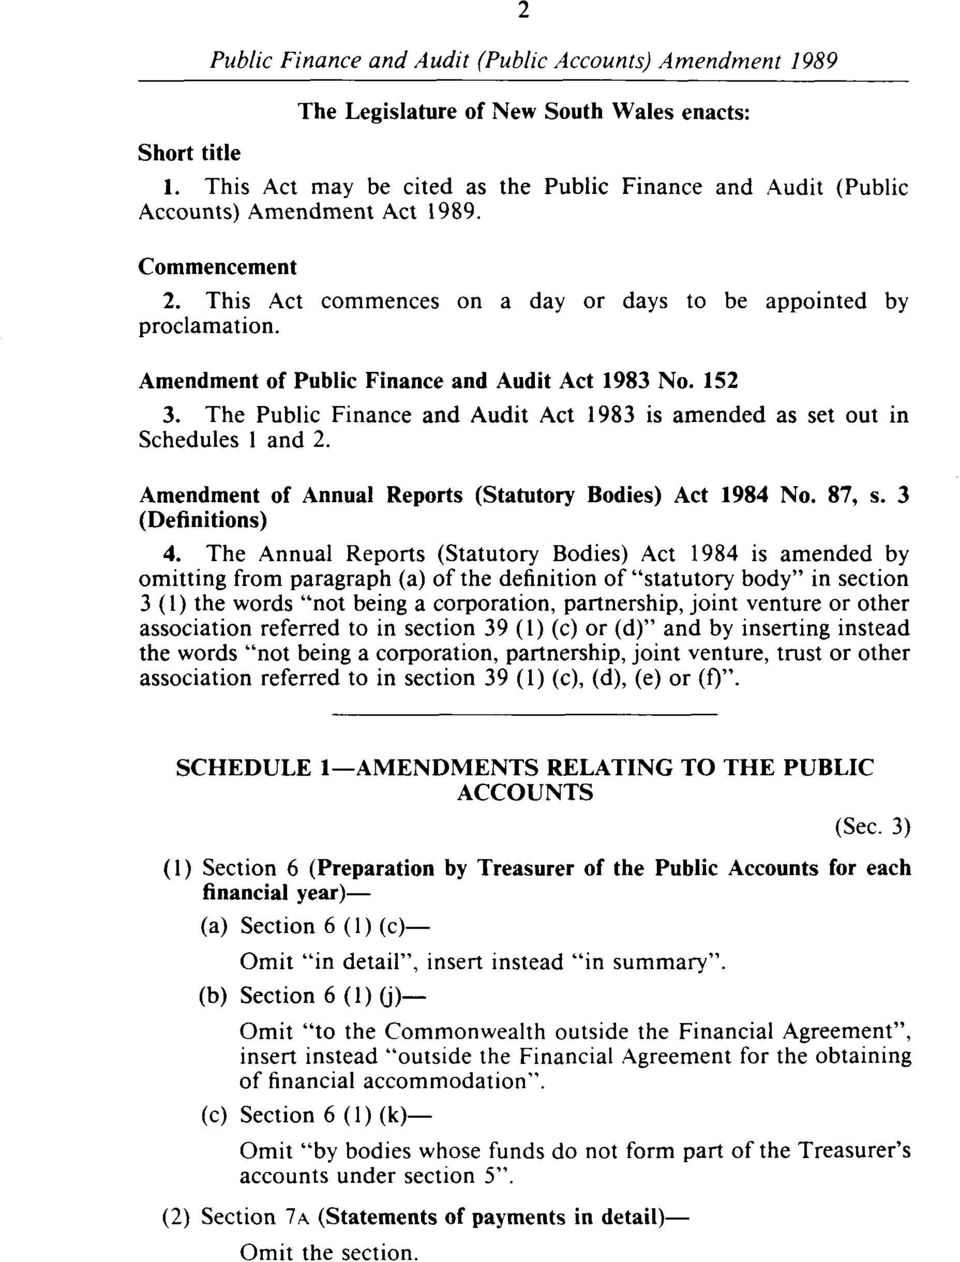 The Public Finance and Audit Act 1983 is amended as set out in Schedules 1 and 2. Amendment of Annual Reports (Statutory Bodies) Act 1984 No. 87, s. 3 (Definitions) 4.